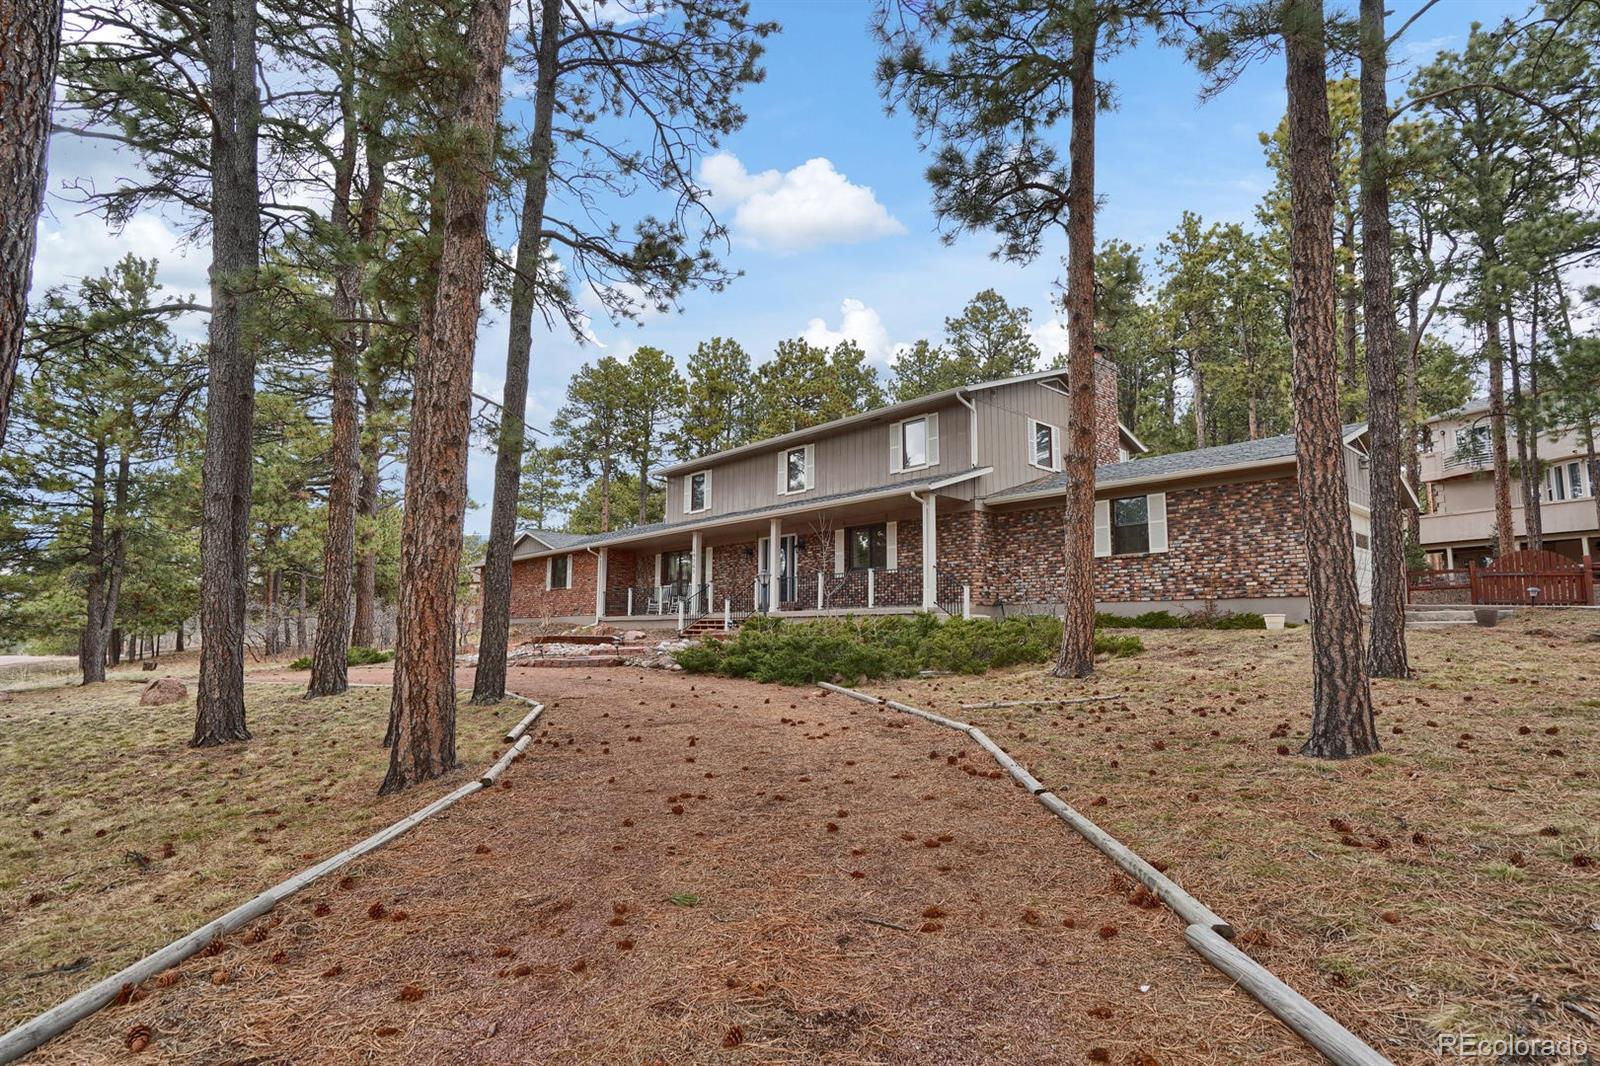 MLS# 2861241 - 2 - 19365 Doewood Drive, Monument, CO 80132